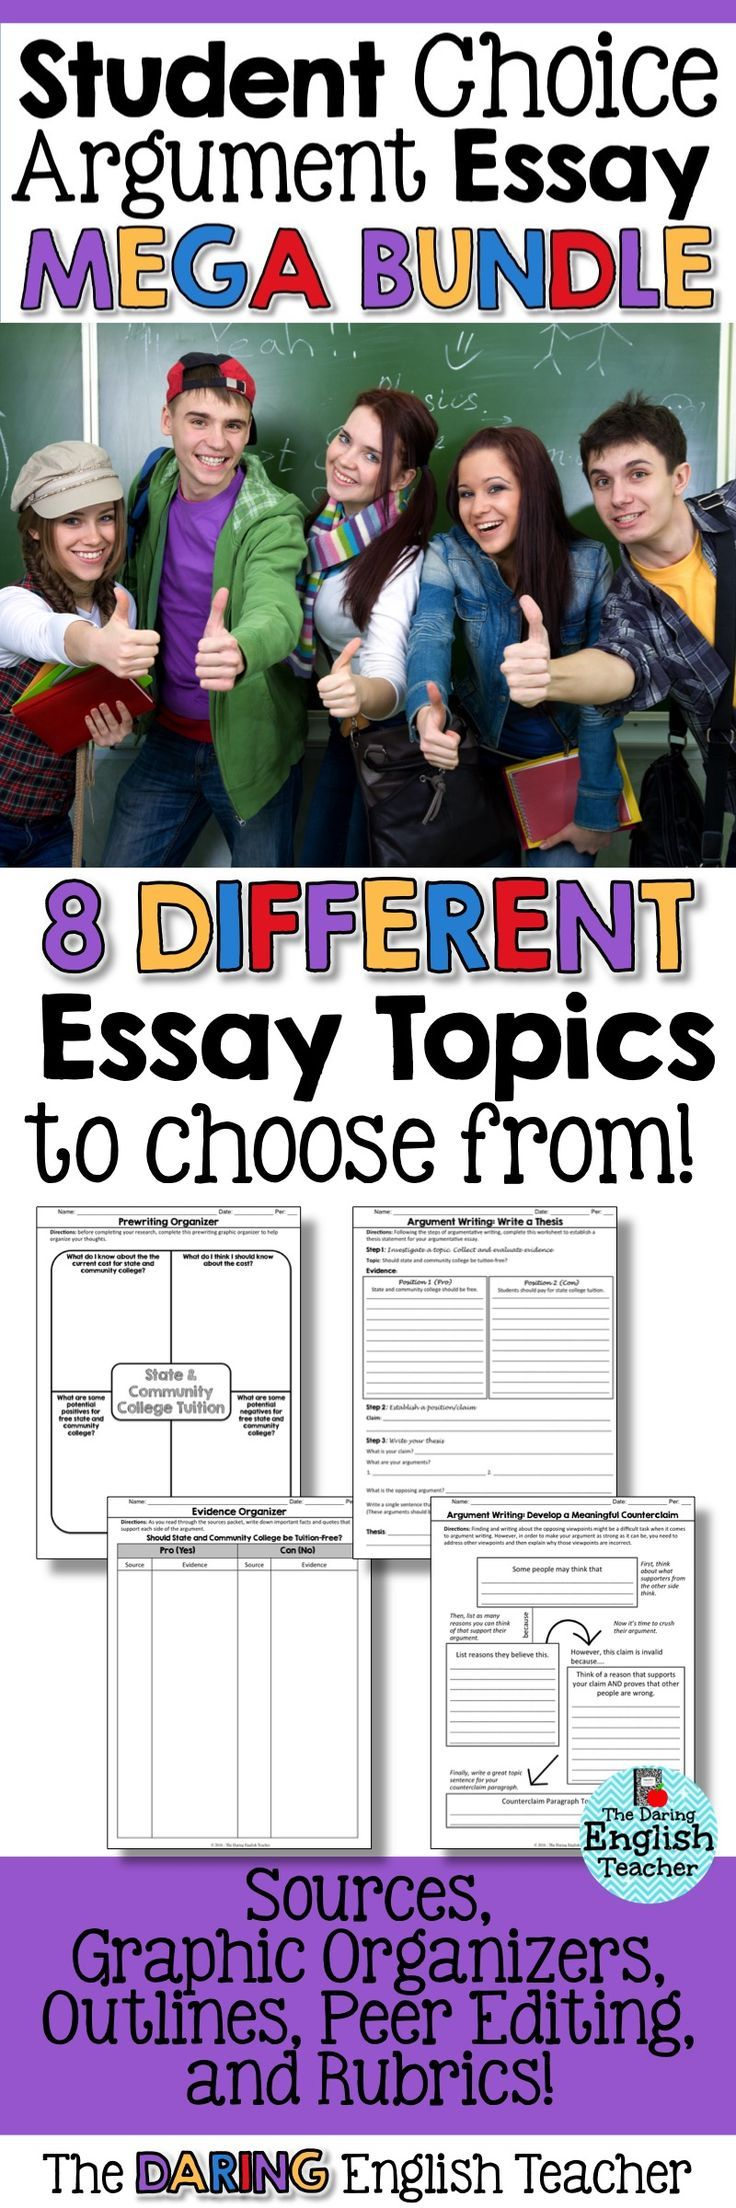 best images about essay mini lessons for middle school and high 17 best images about essay mini lessons for middle school and high school english research writing research paper and graphic organizers